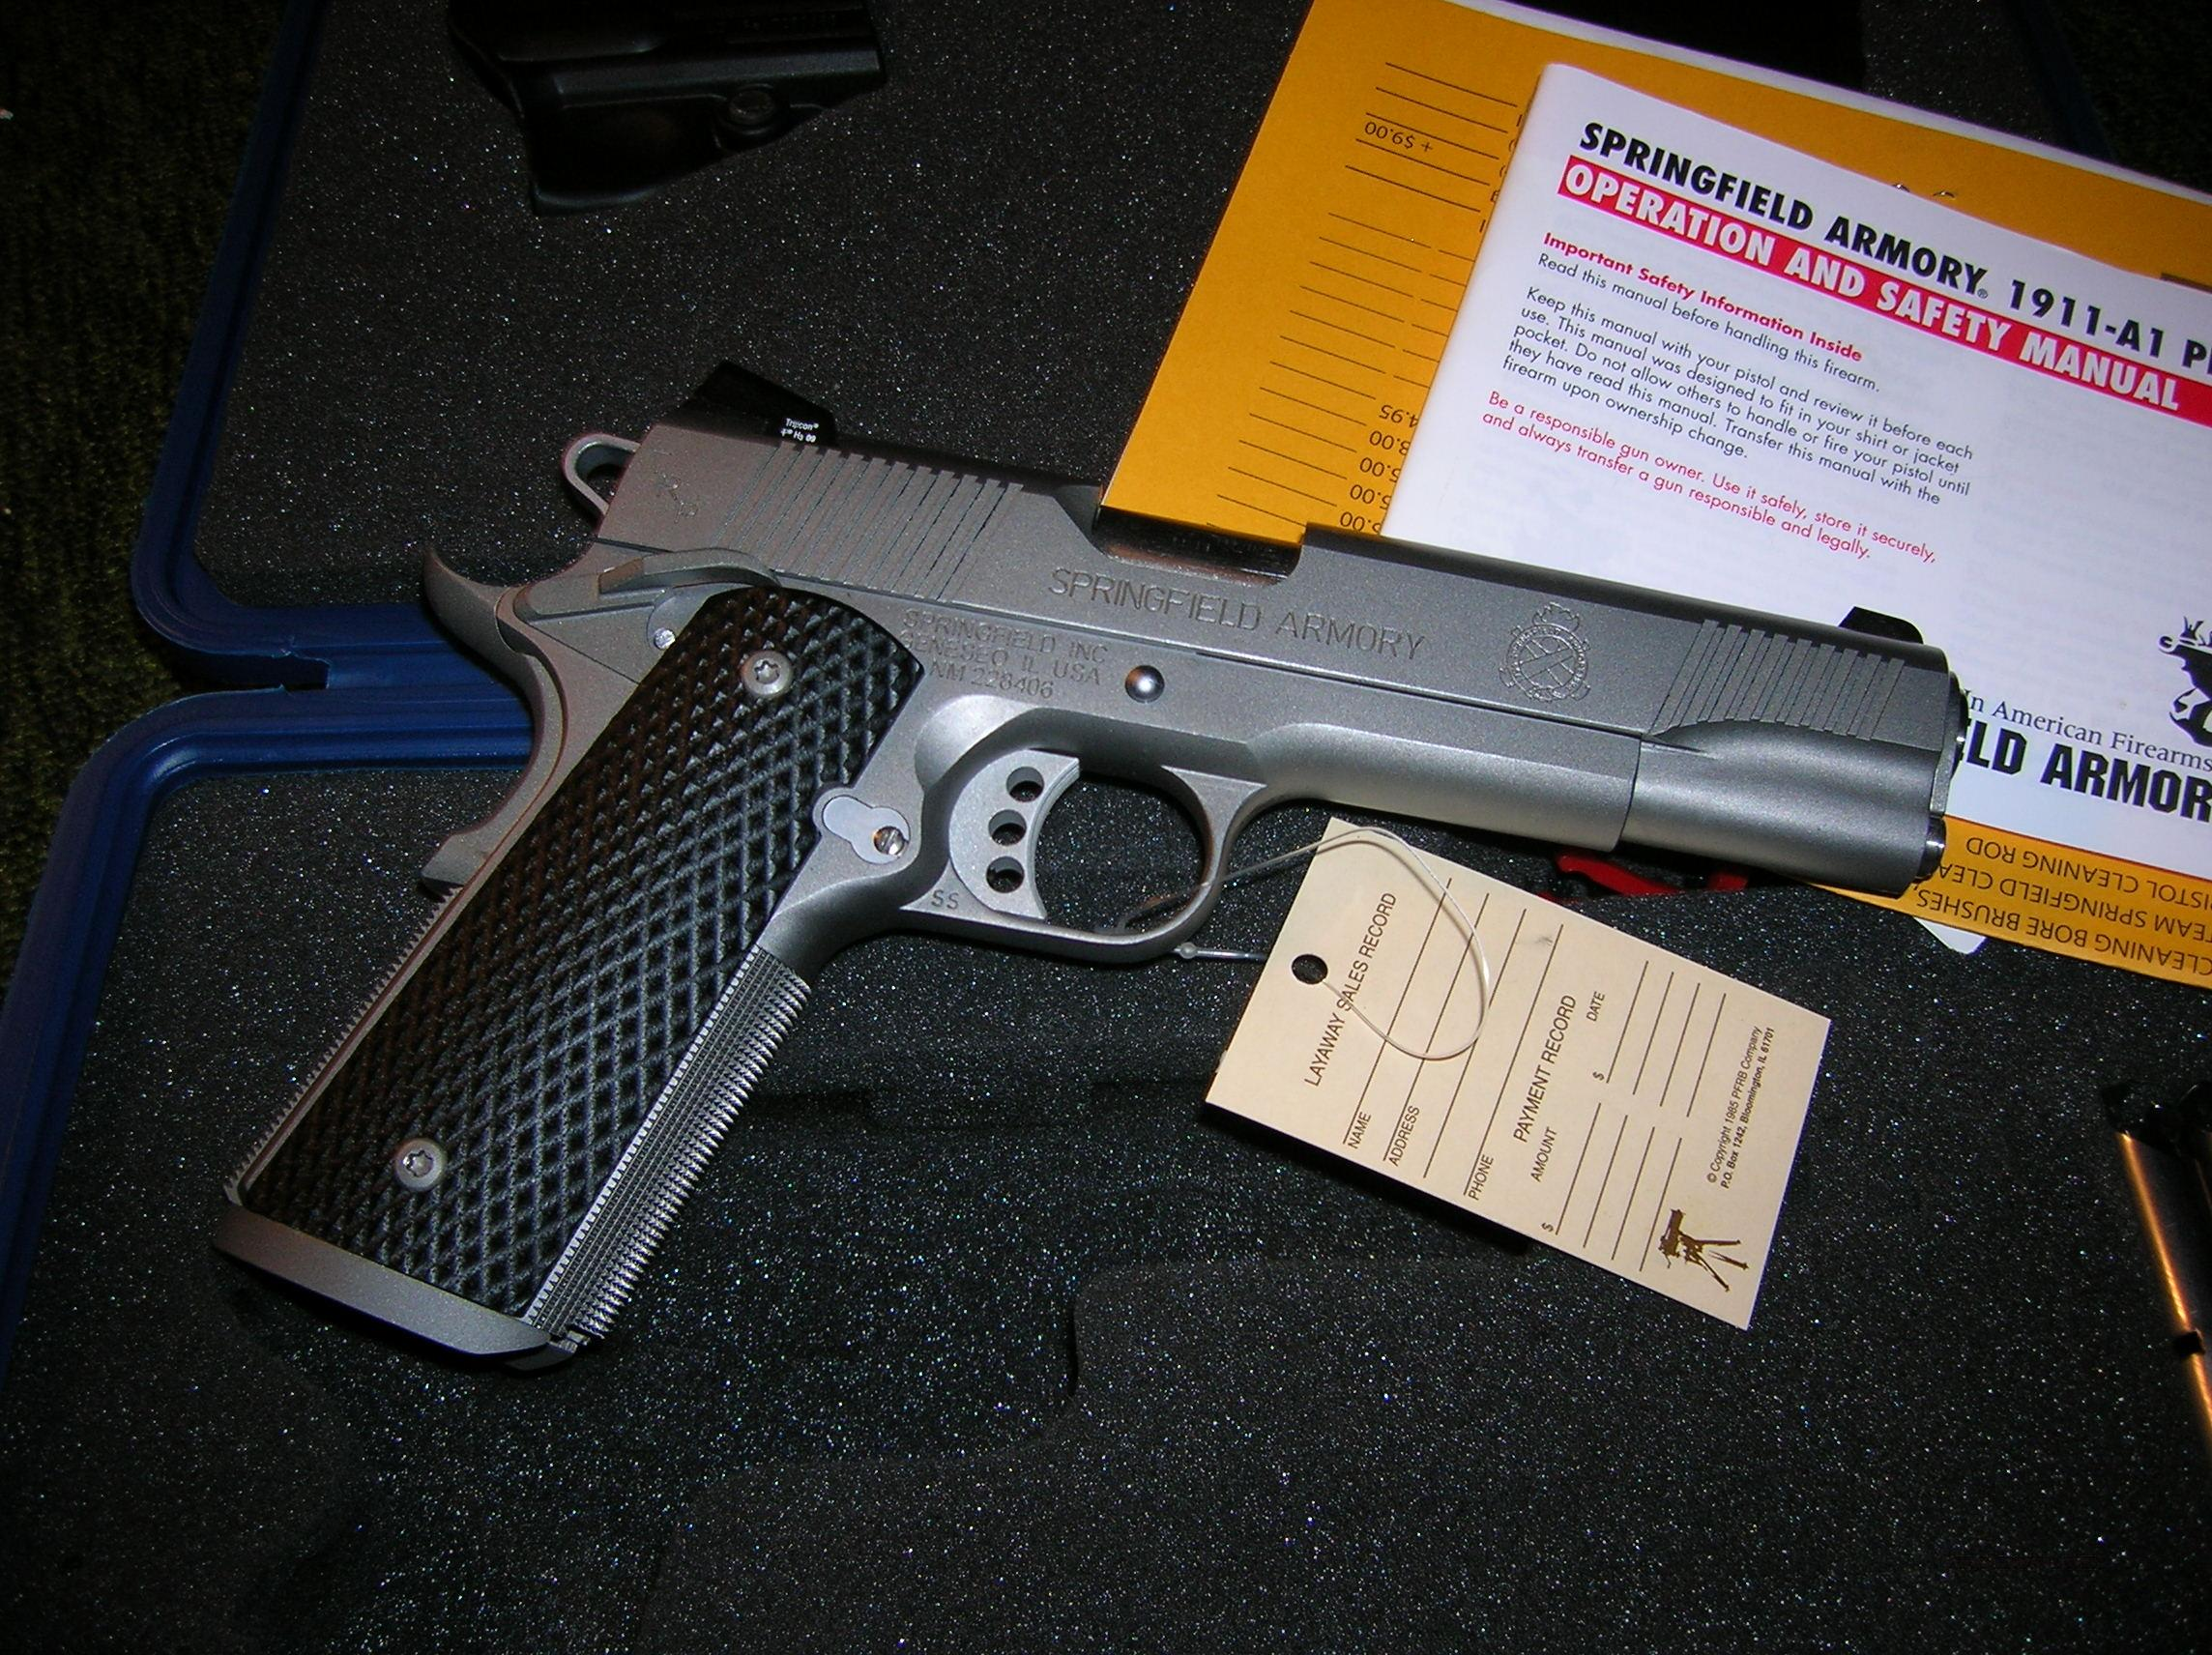 SPRINGFIELD TRP 45ACP 1911-A1 TACTICAL PISTOL STAINLESS LOADED WITH NIGHT SIGHTS (PC9107LP)  Guns > Pistols > Springfield Armory Pistols > 1911 Type